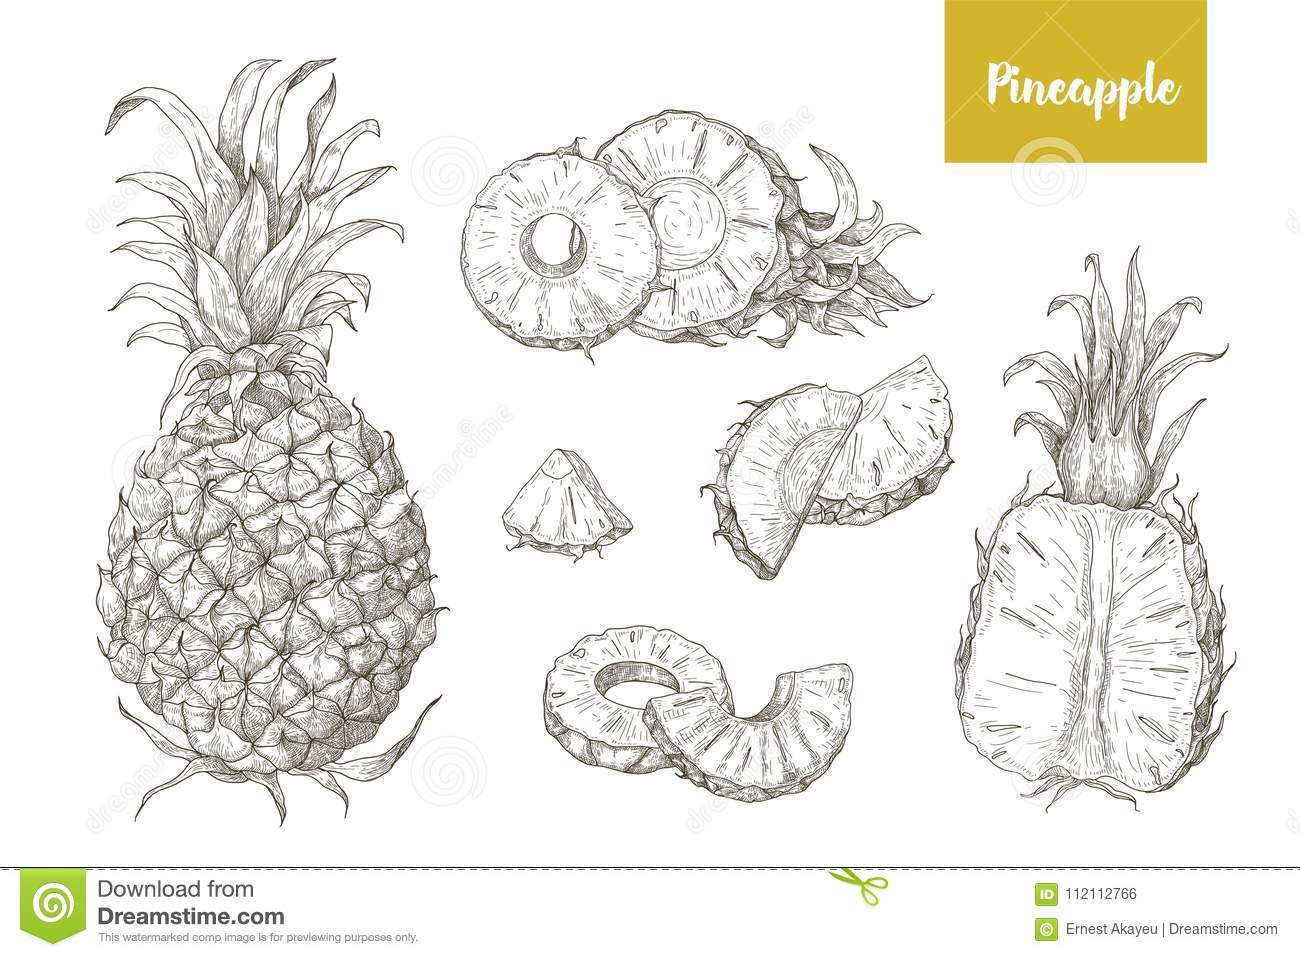 set of naturalistic drawings of whole and cut pineapples and its